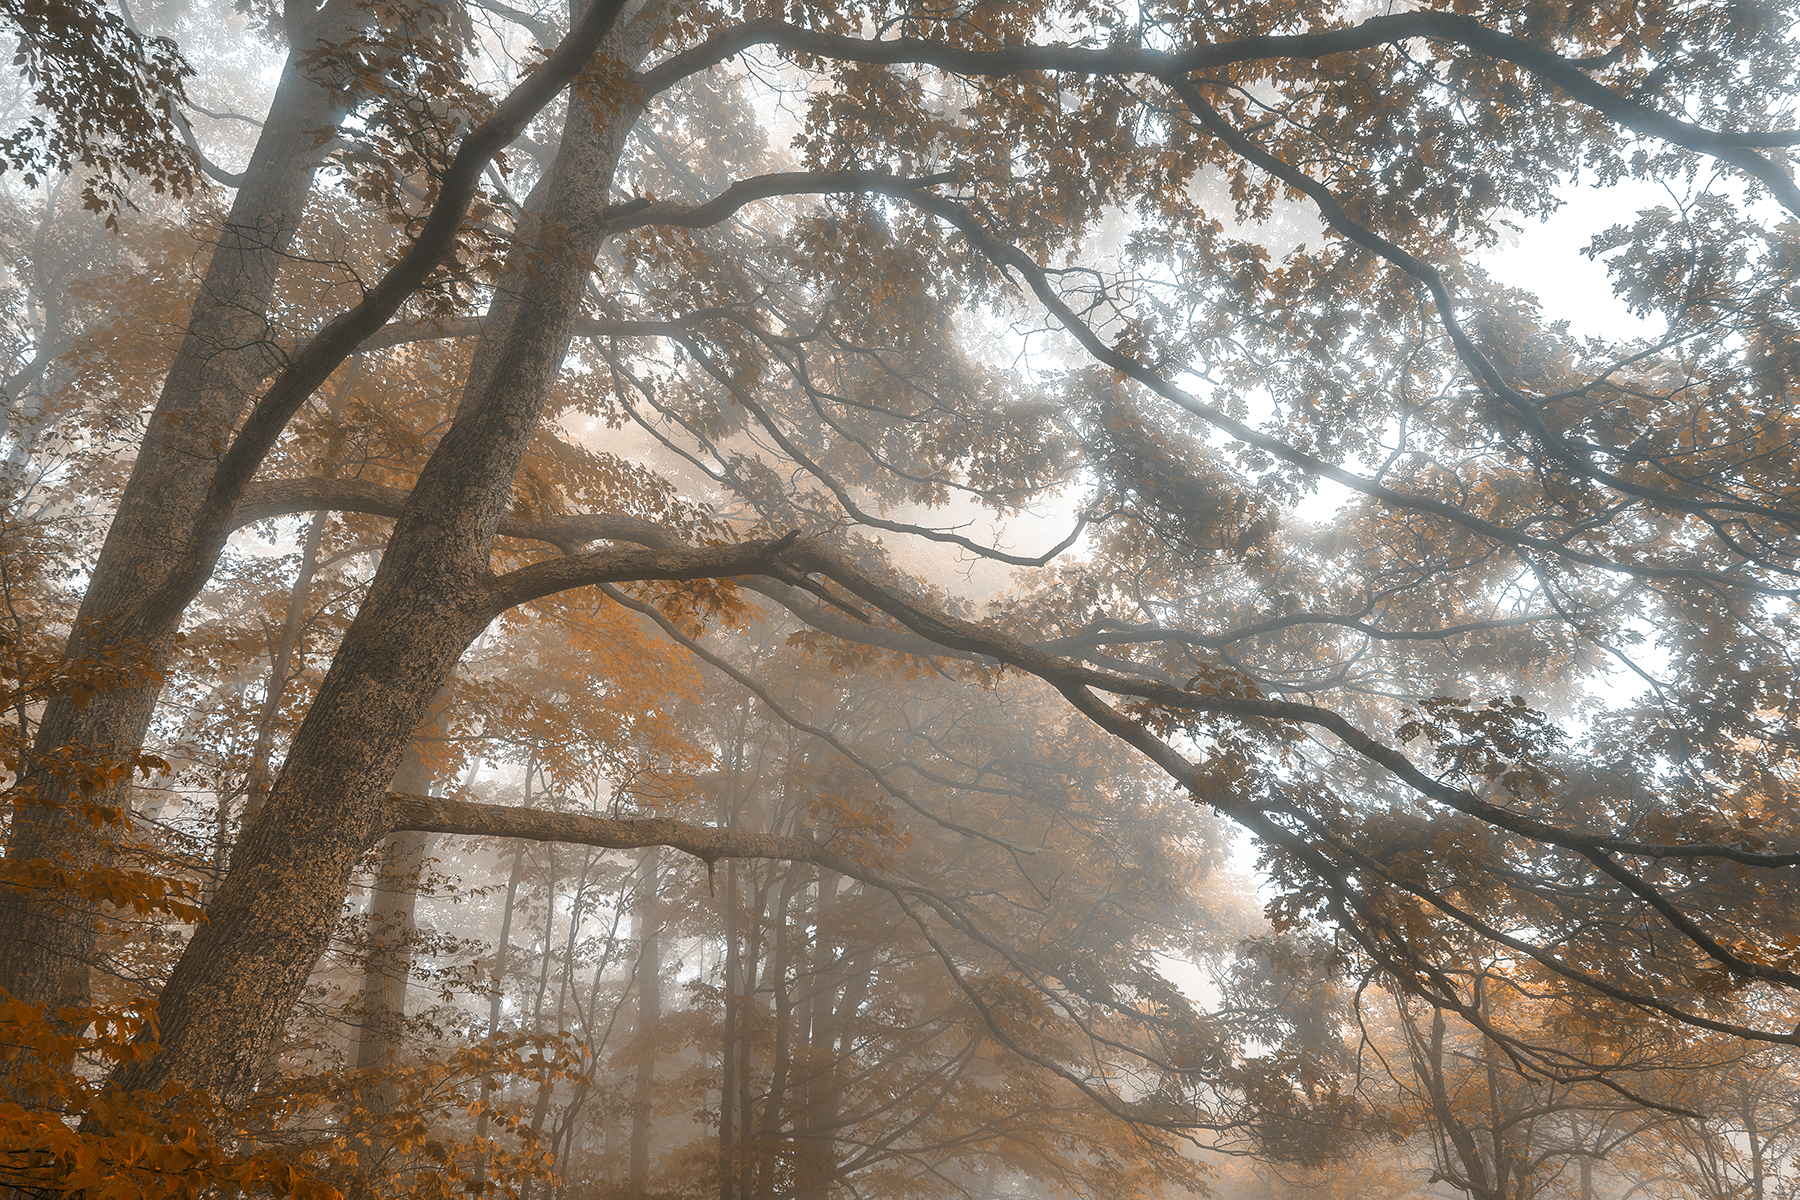 Misty forest branchscape - sepia euphoria hdr photo